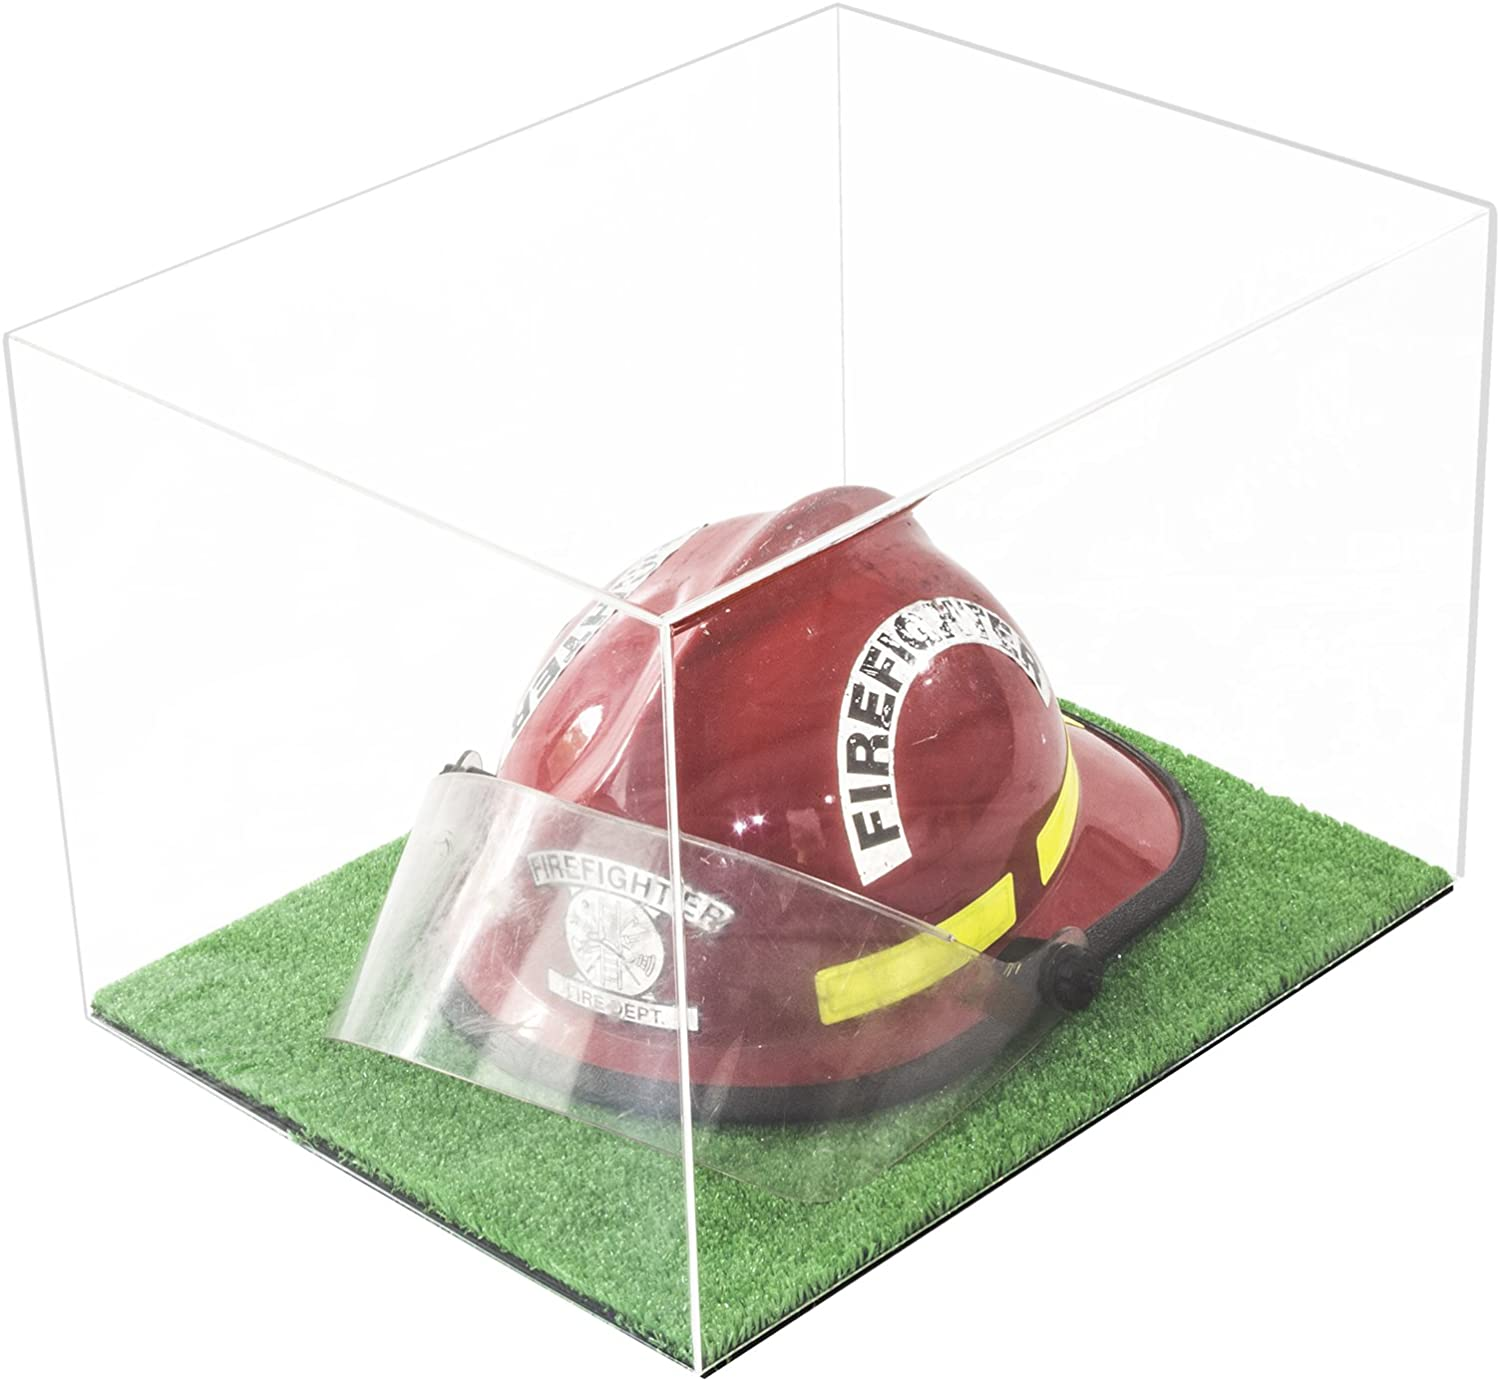 Better Display Cases Versatile Clear Acrylic Display Case - Large Rectangle Box with Turf Base 18